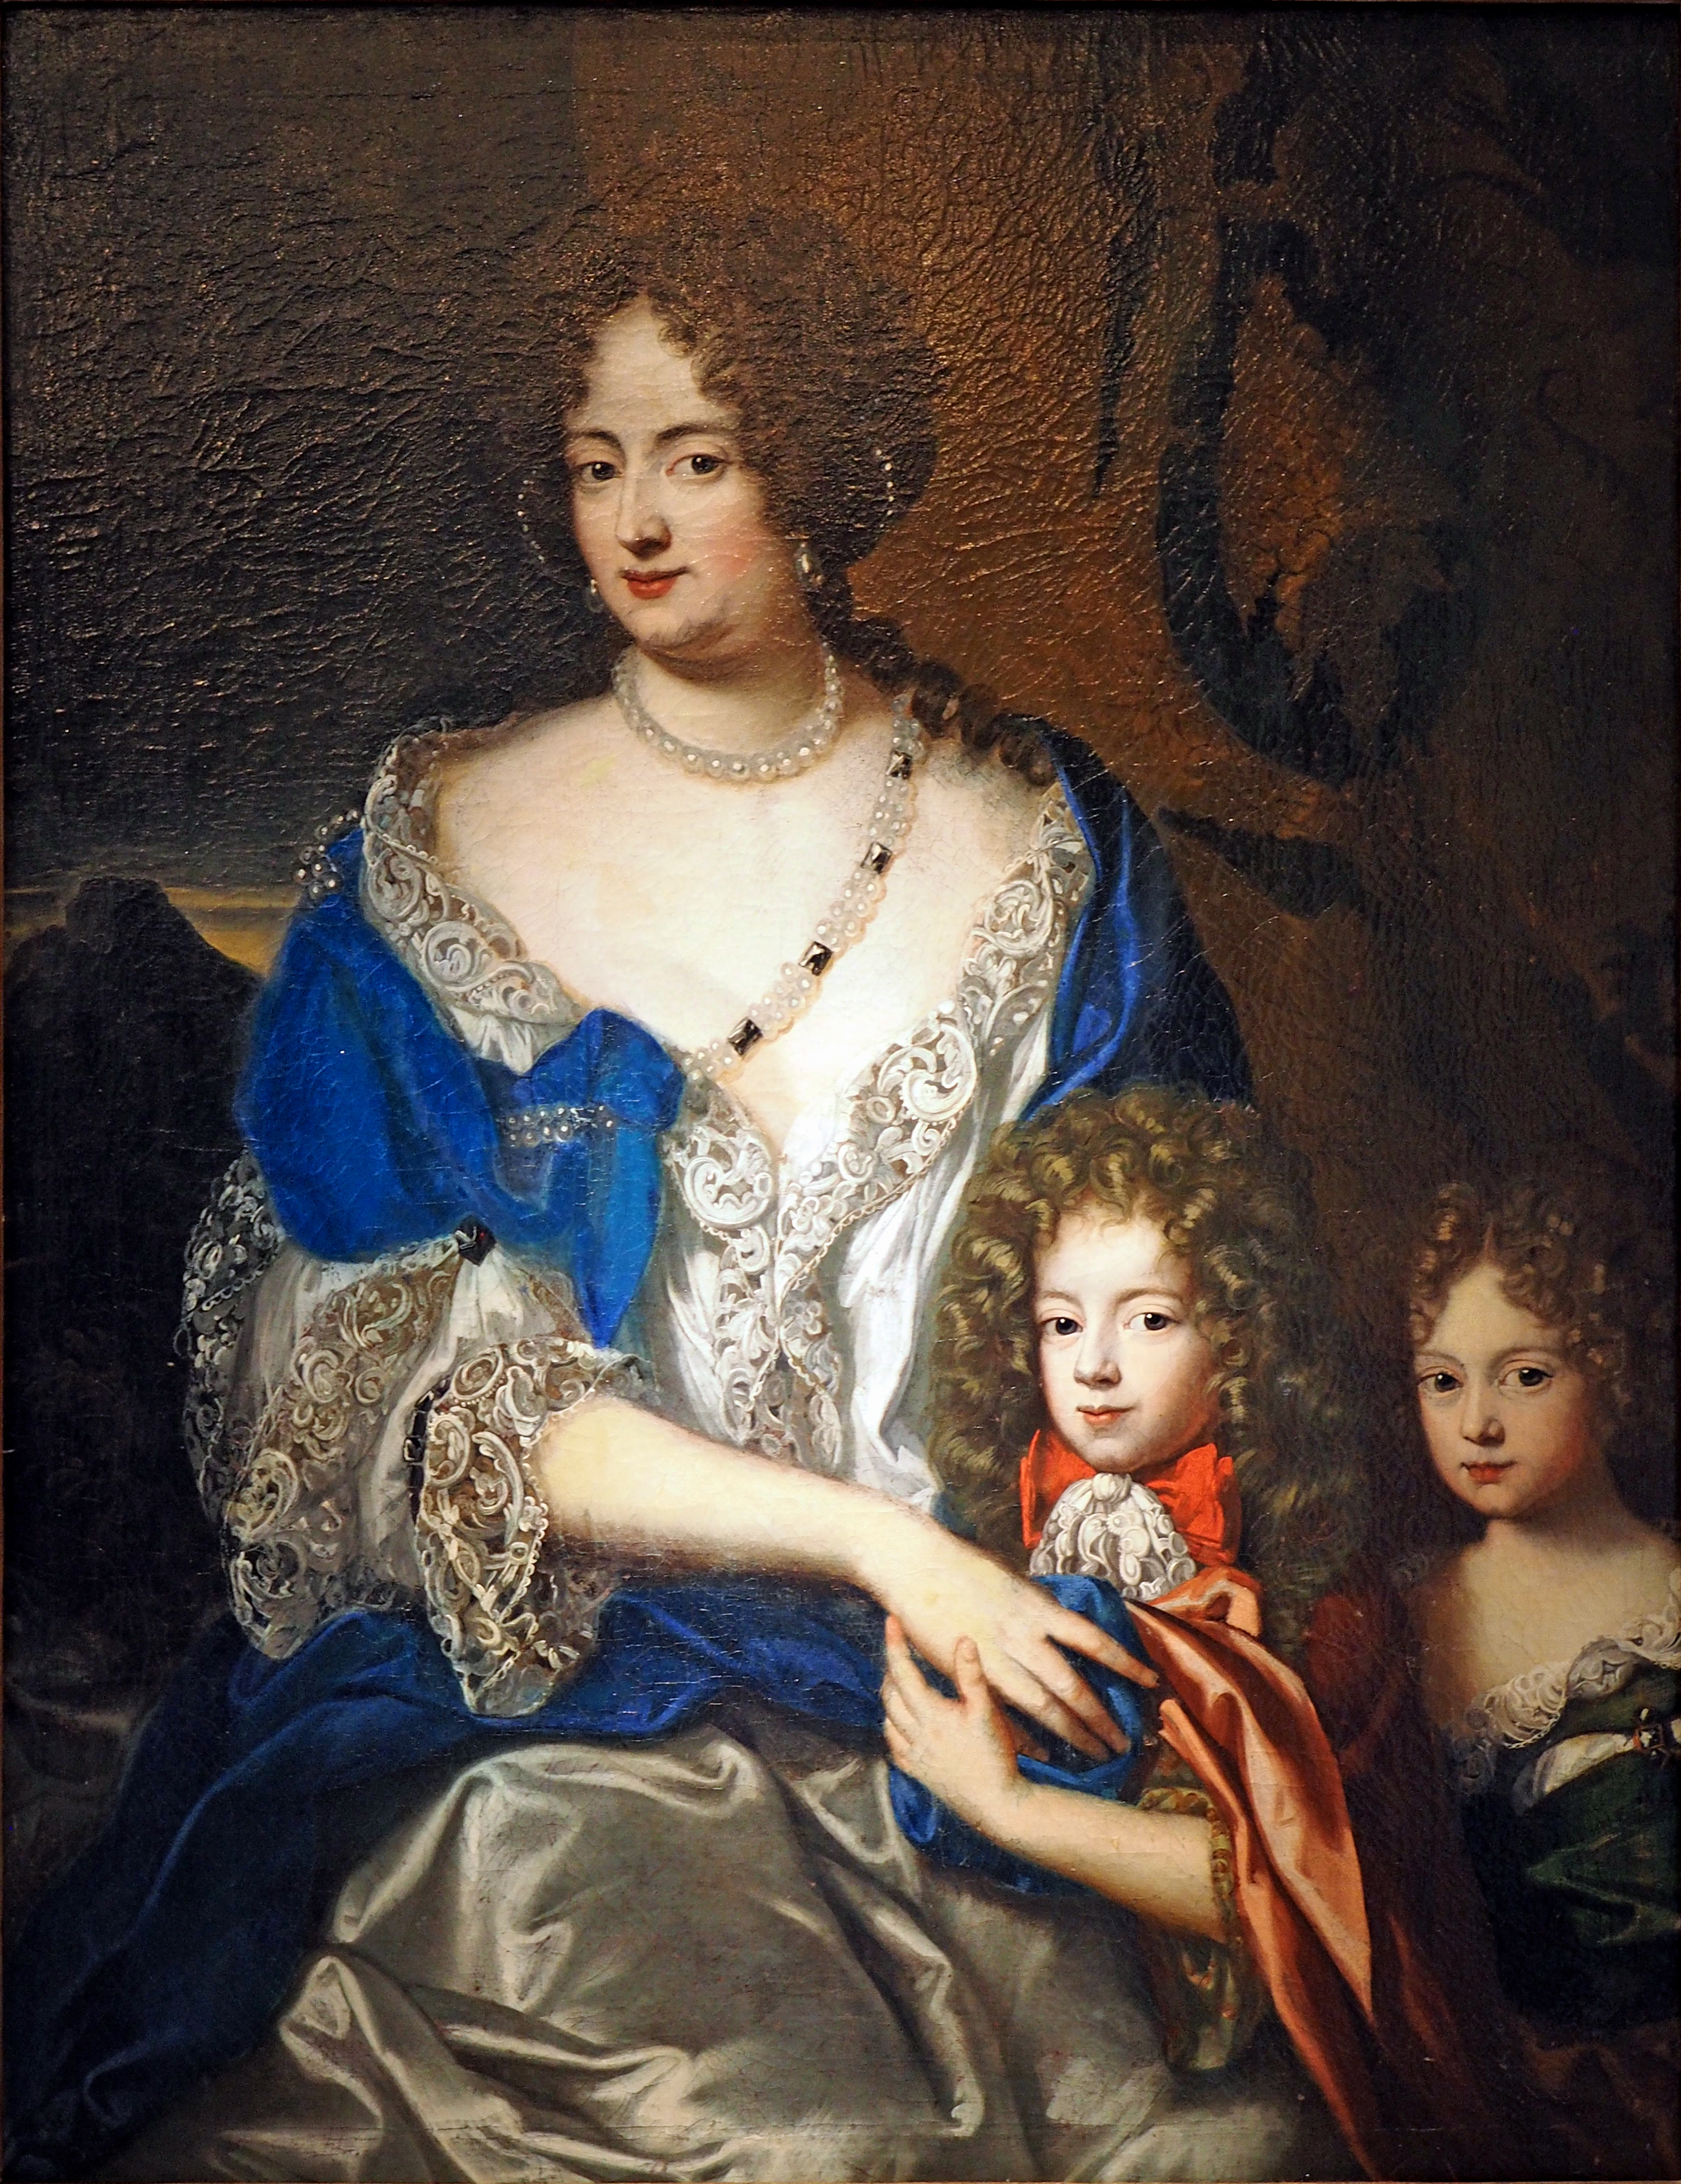 Has the victim of 322-year-old royal intrigue been found?